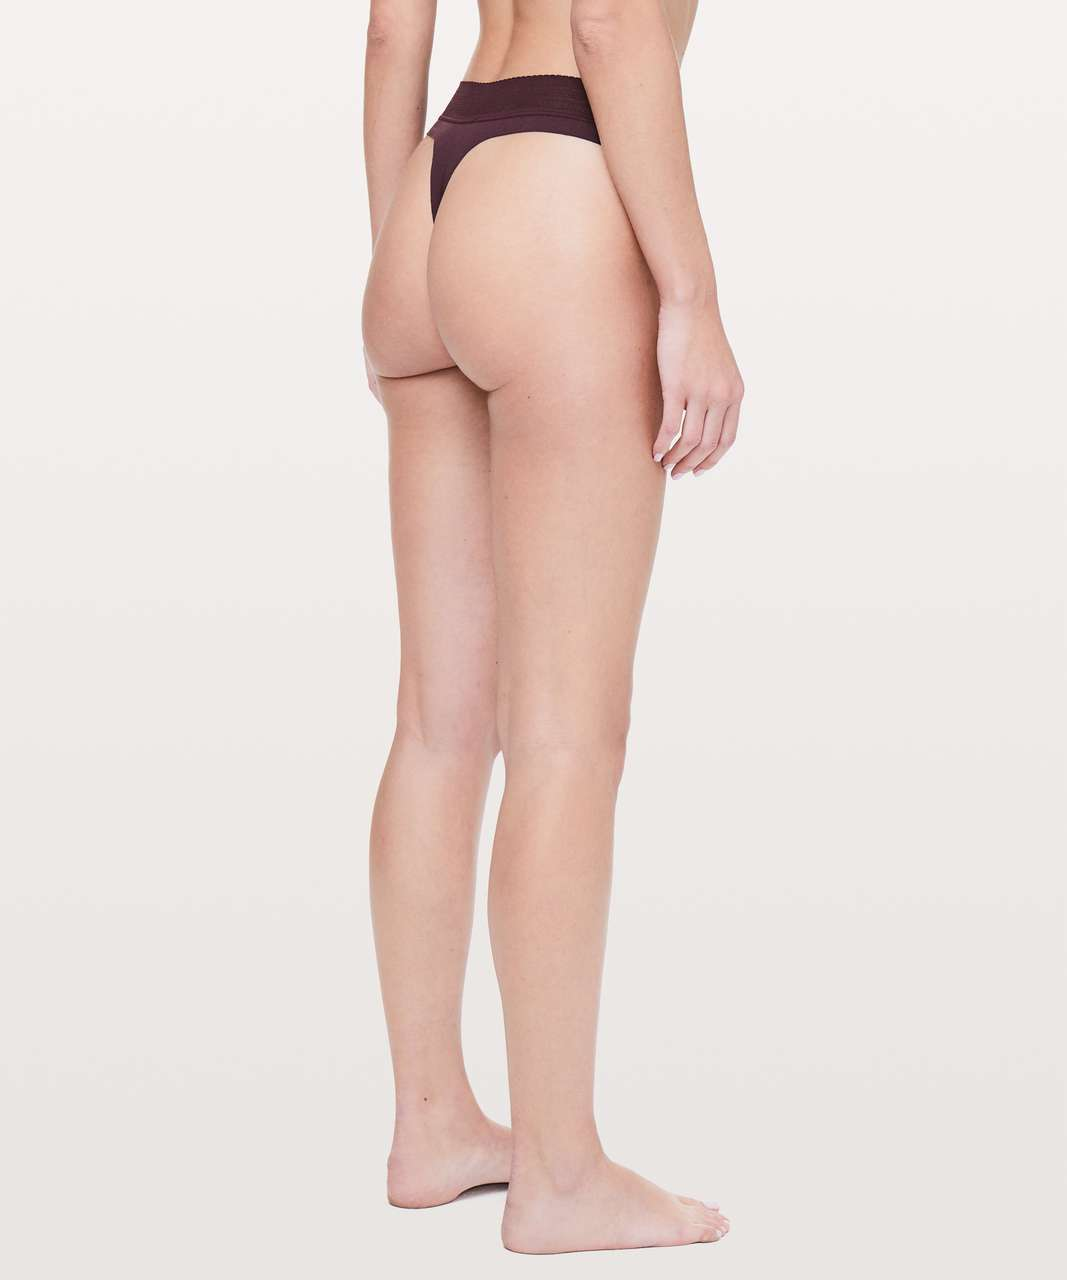 Lululemon Ever Essentials Thong - Dark Adobe